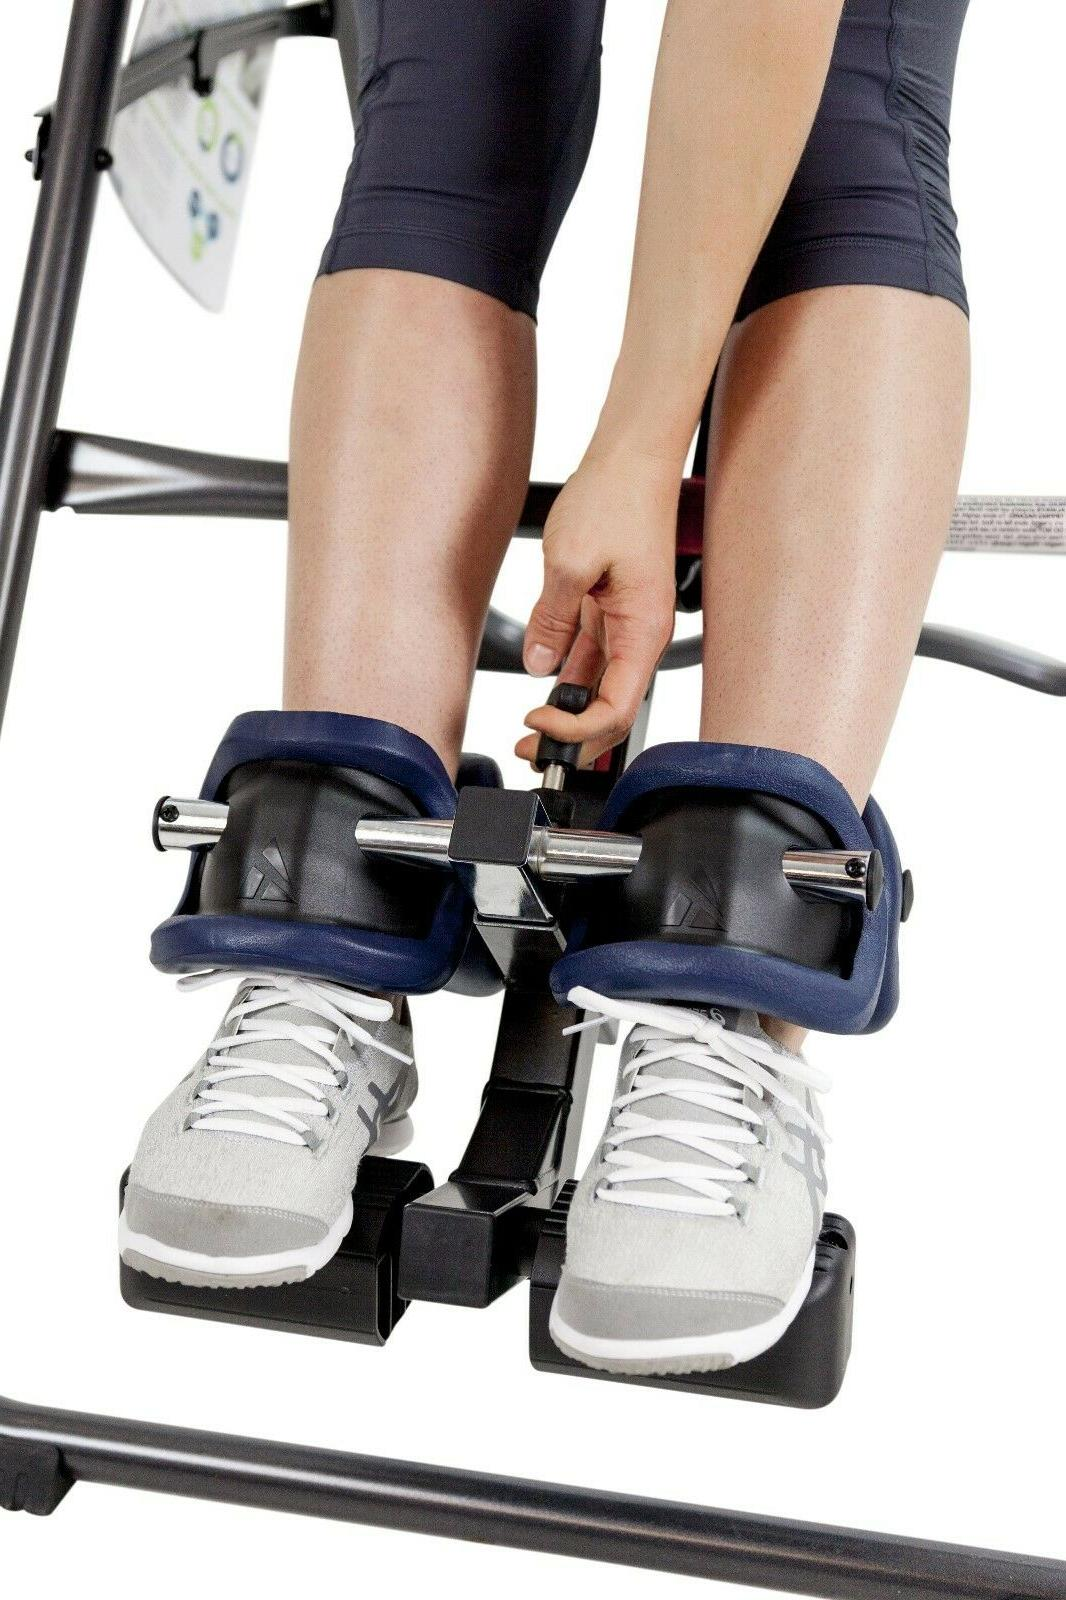 HOT TEETER NXT-S Inversion Table NX1002